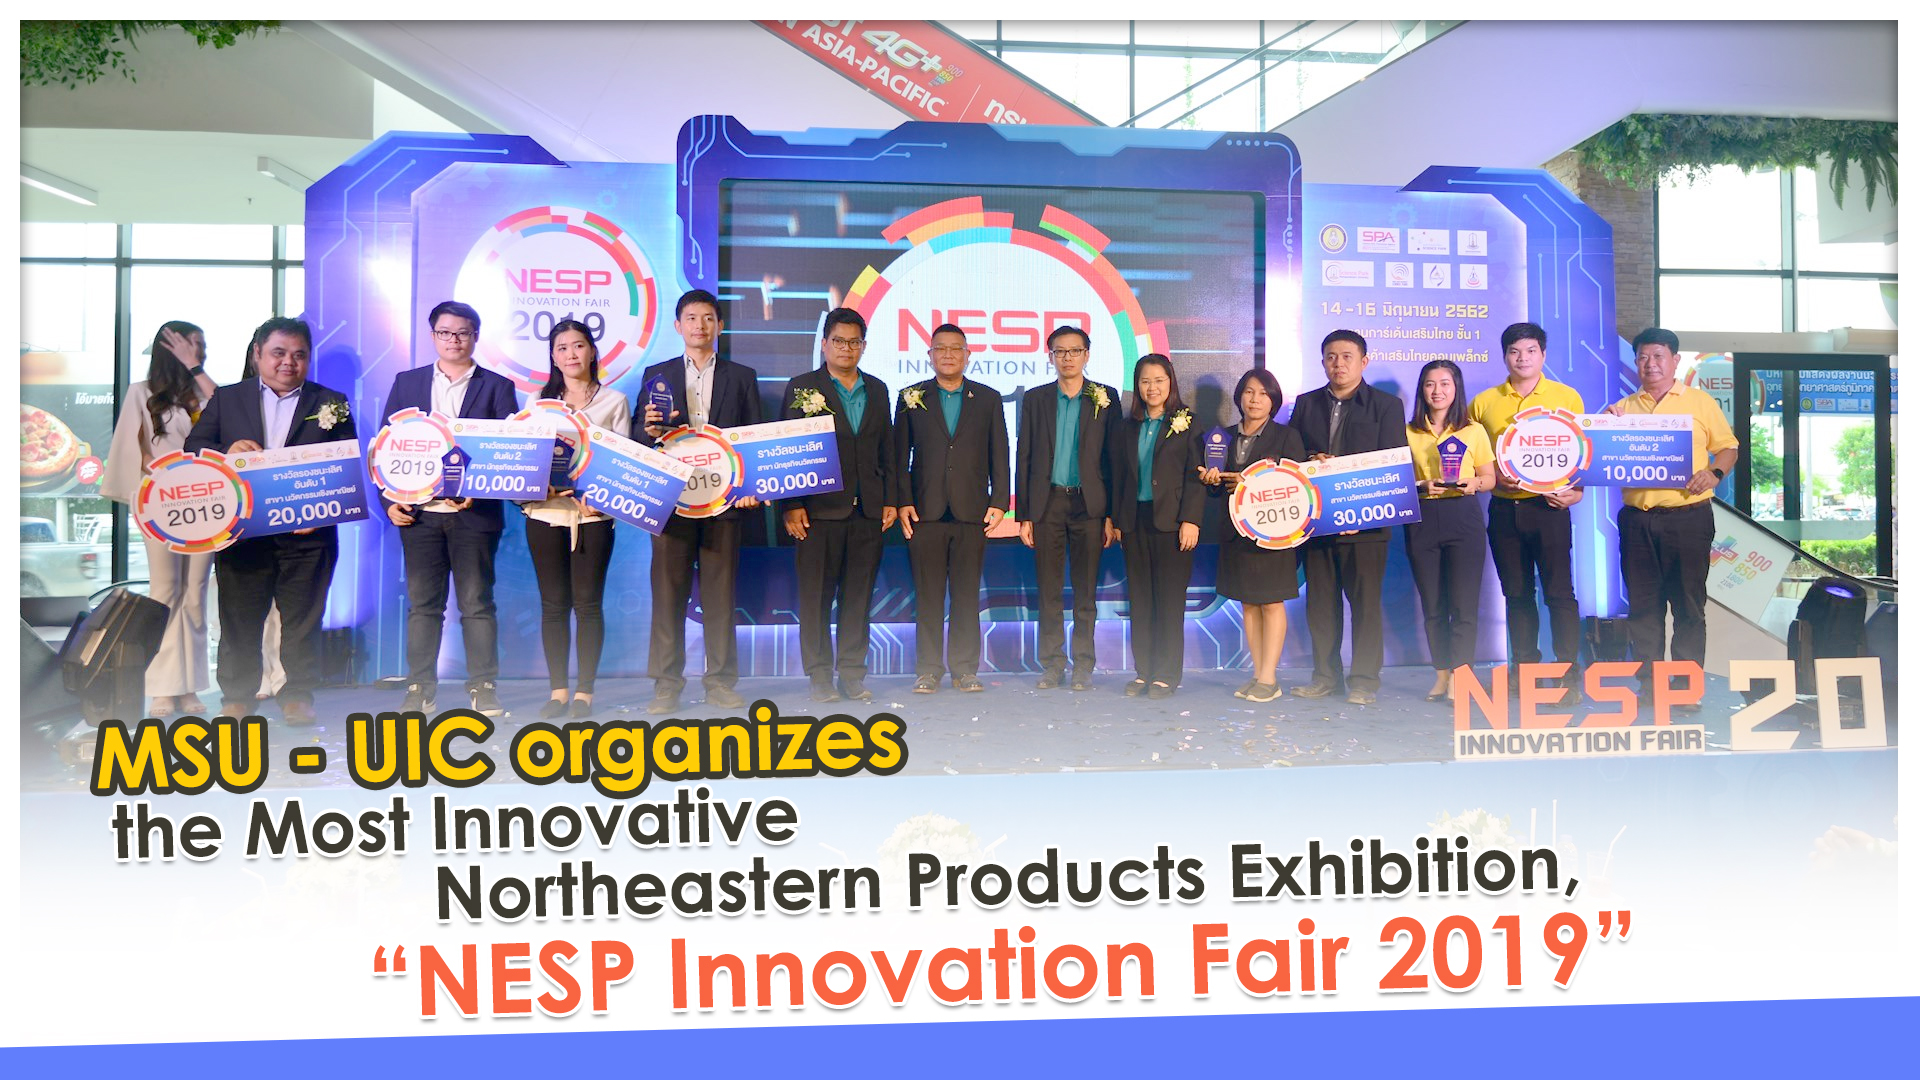 "MSU - UIC organizes the Most Innovative Northeastern Products Exhibition, ""NESP Innovation Fair 2019"""